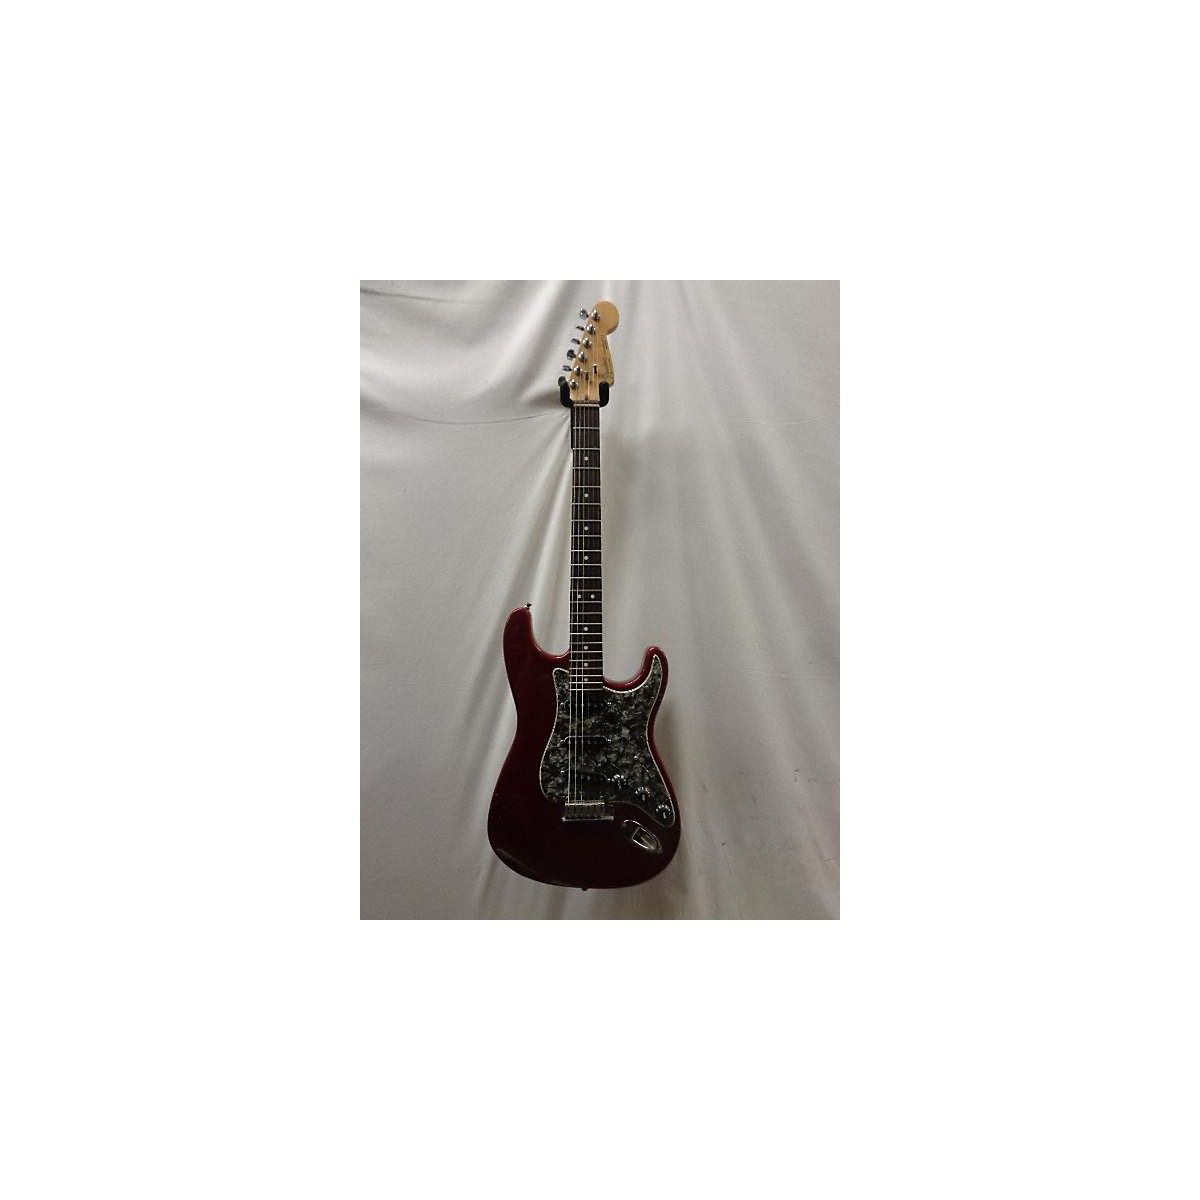 Fender 1991 Stratocaster Solid Body Electric Guitar